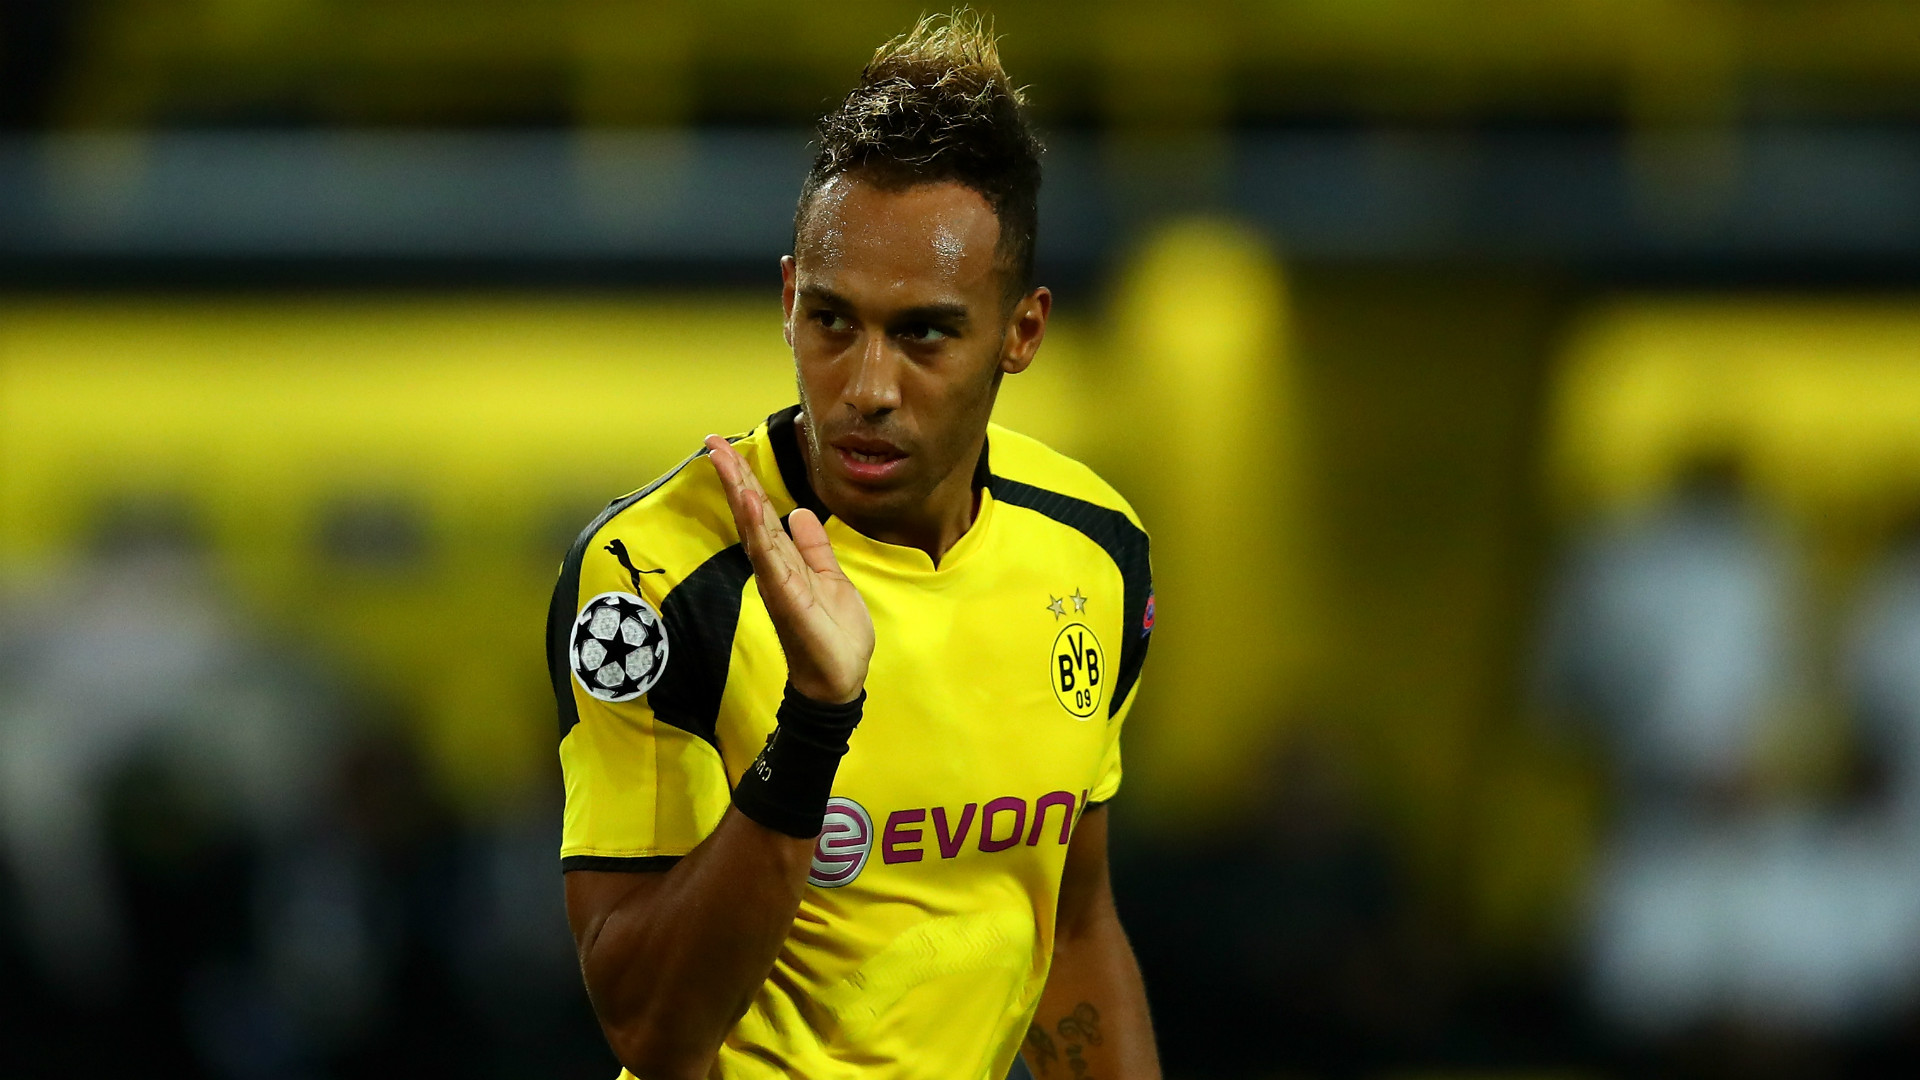 Aubameyang could stay at Dortmund past 2020 for 'incredible' fans